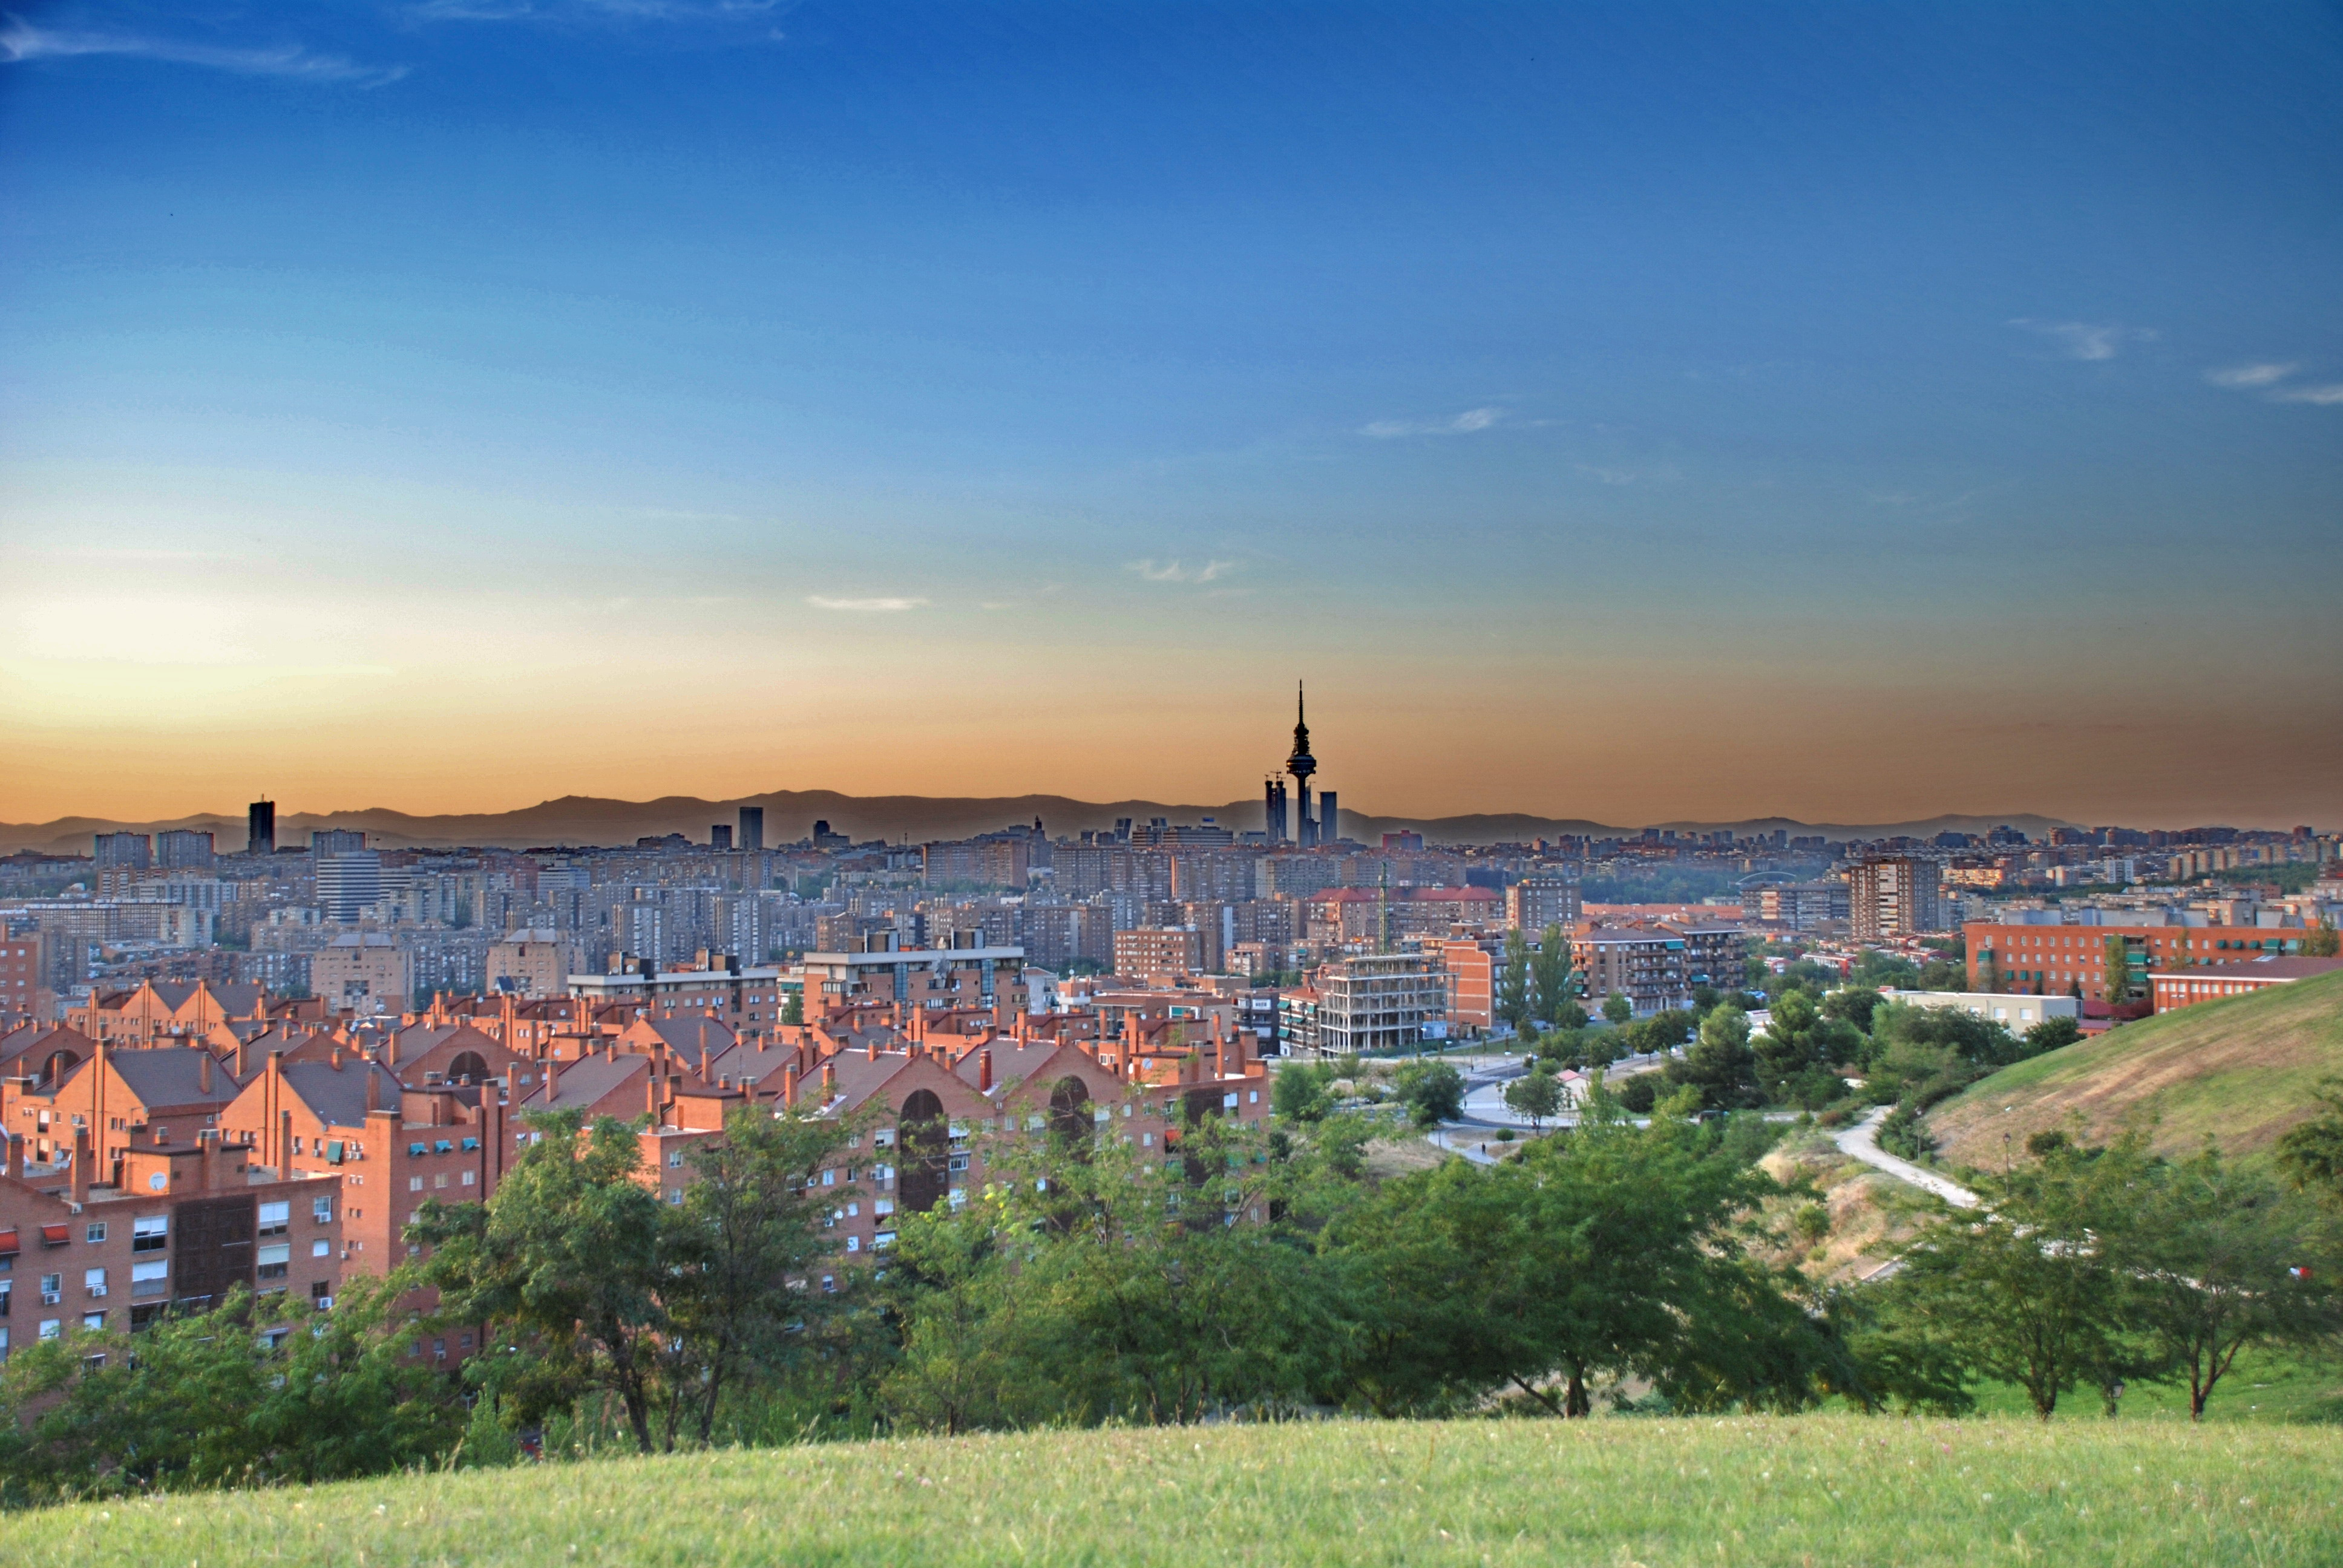 File:Madrid SkyLine - Cerro del Tío Pío.jpg - Wikimedia Commons